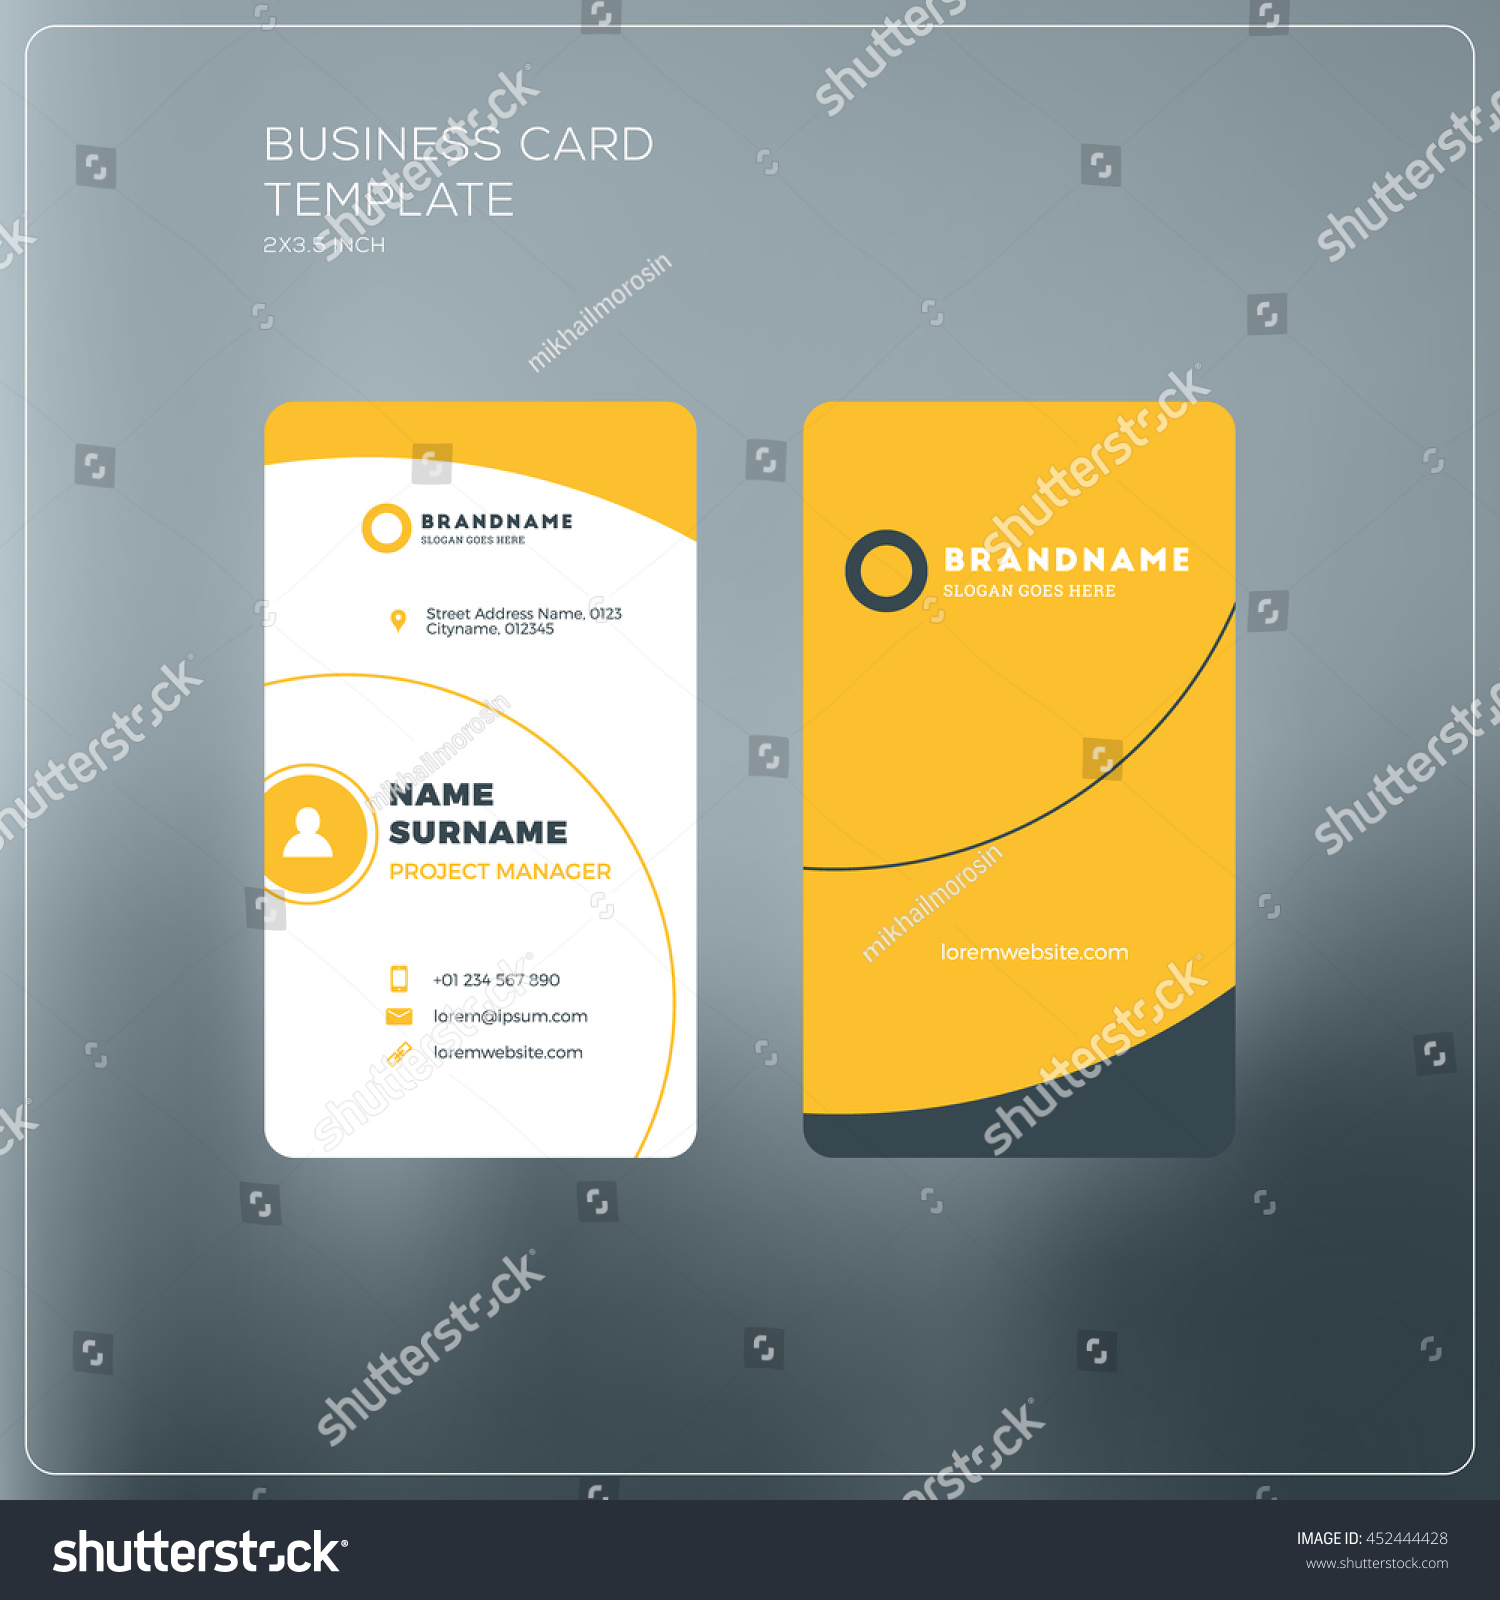 Vertical business card template company logo stock photo photo vertical business card template with company logo two sided business card mock up with fbccfo Image collections